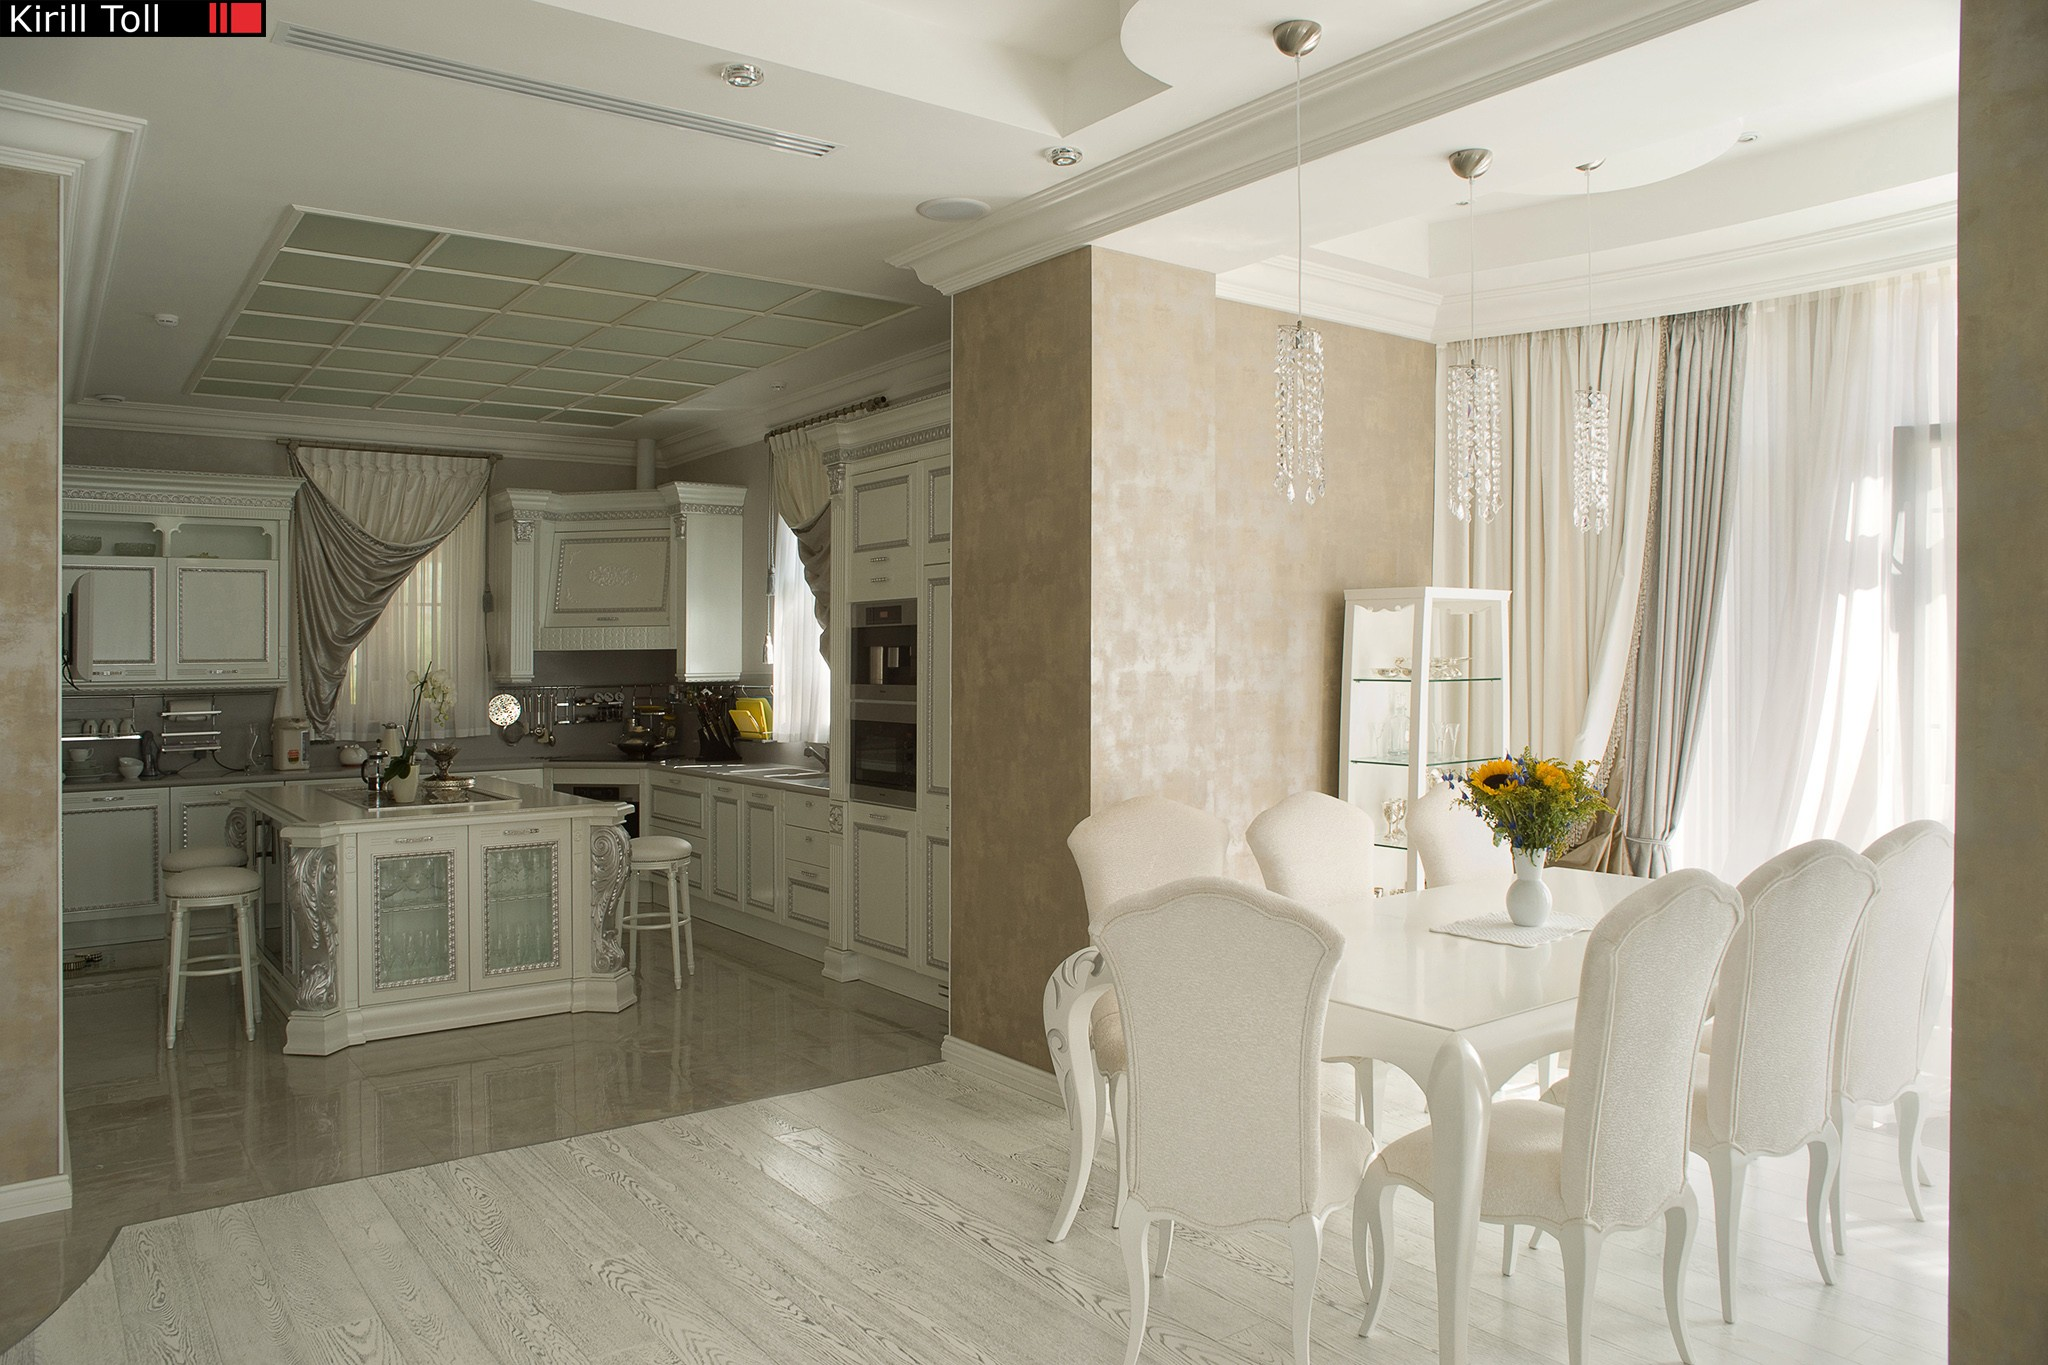 House near Moscow on interior photos of real estate from Kirill Toll in the gallery of an interior photographer